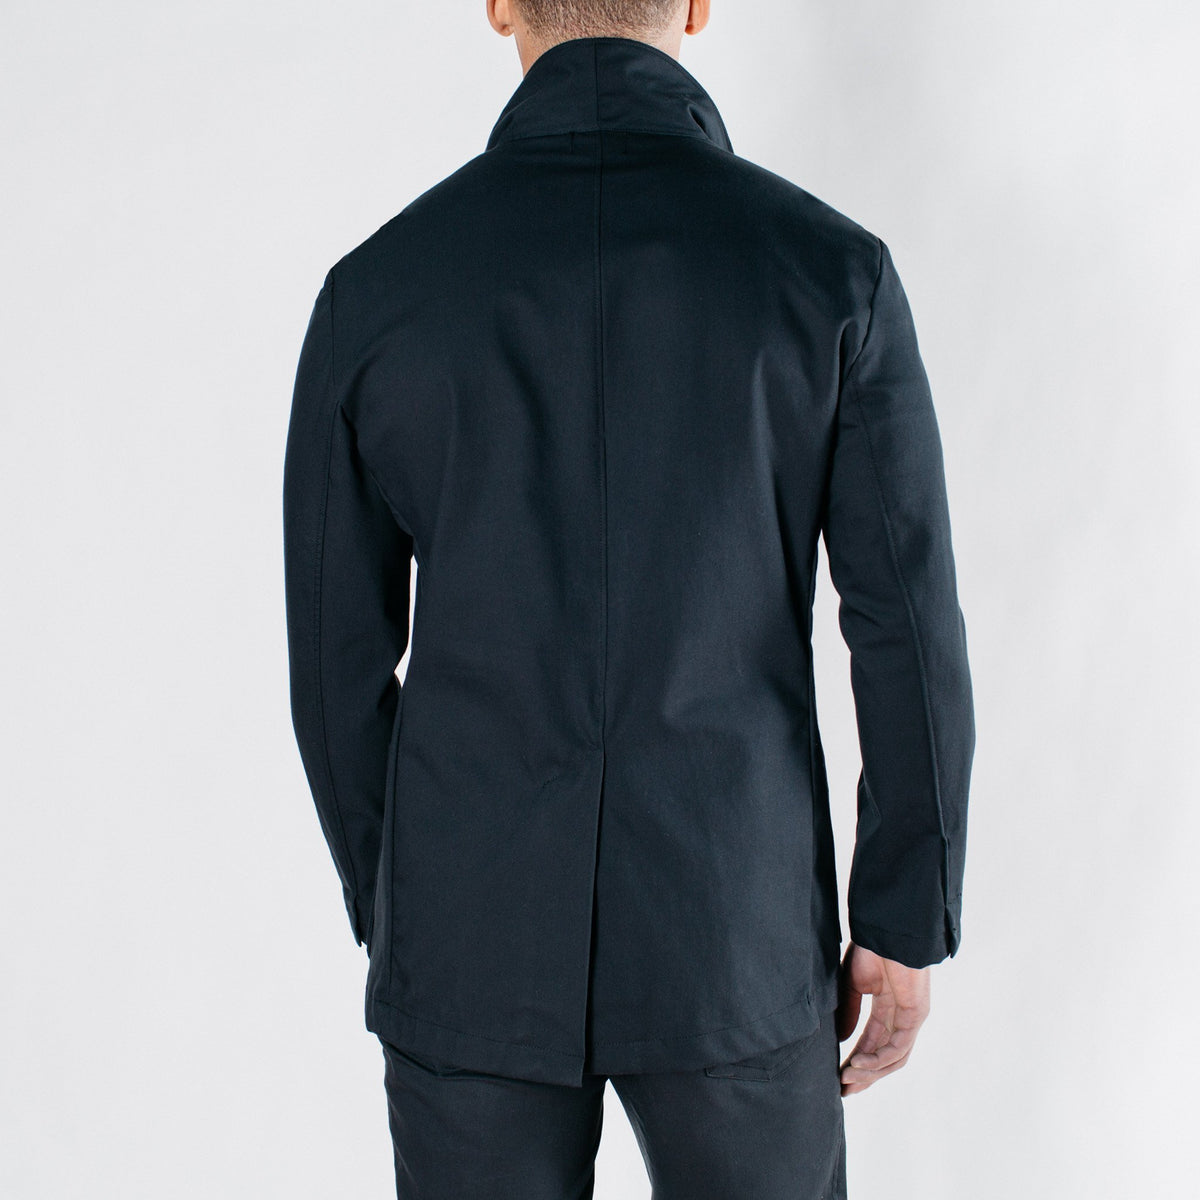 Dash Jacket - Black